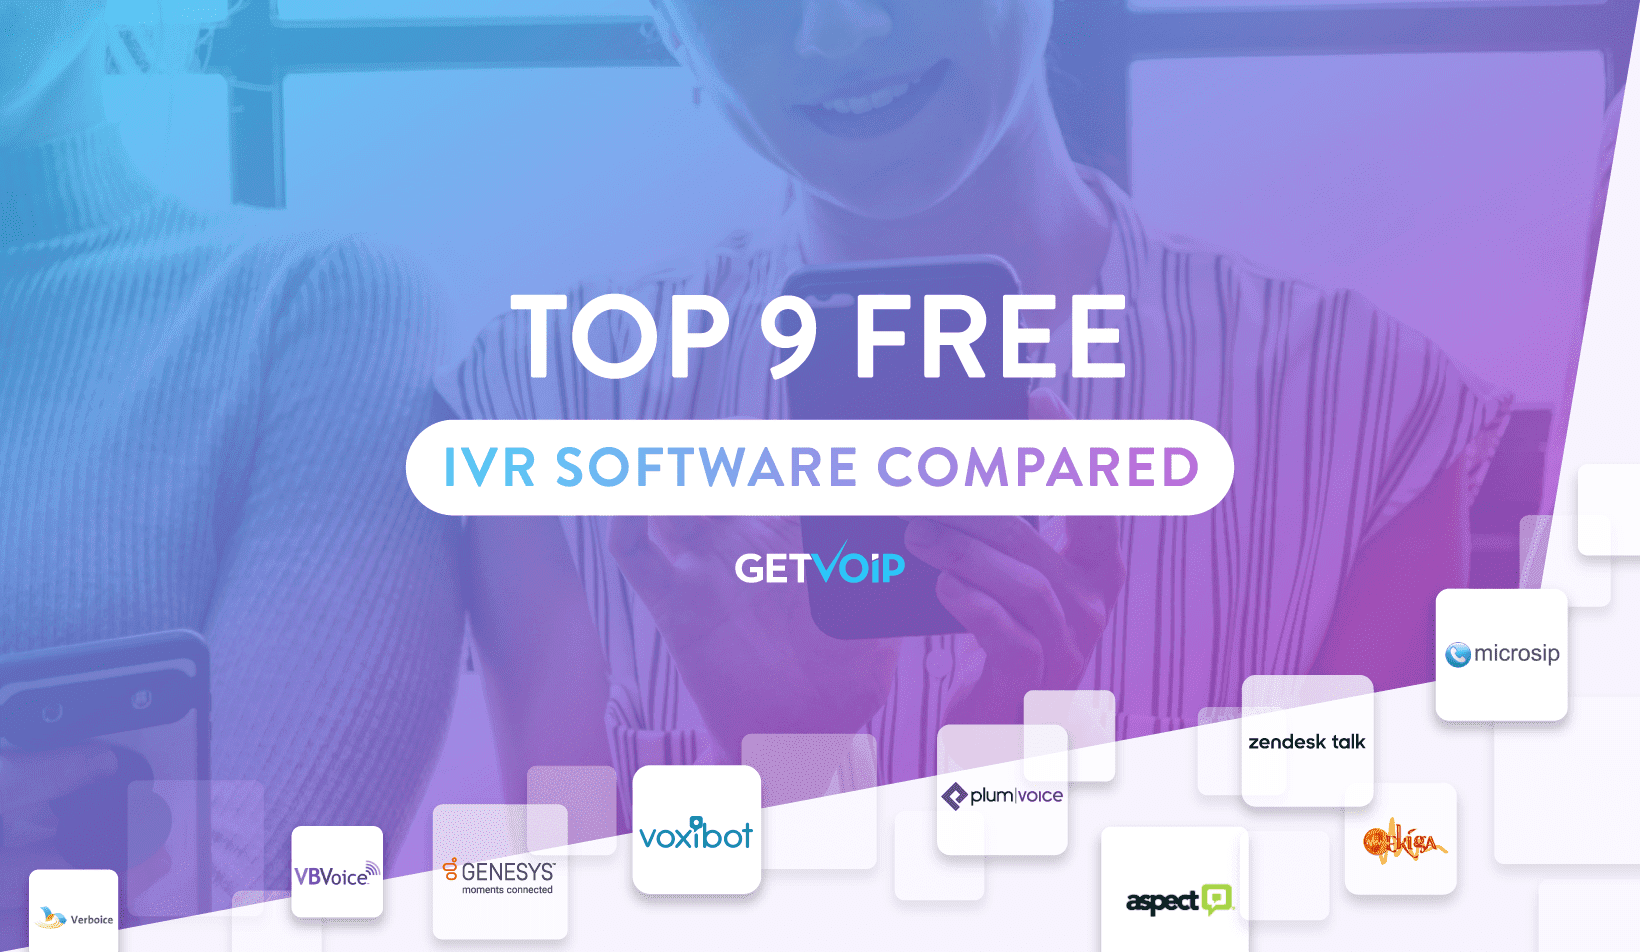 Top 9 Free IVR Software Compared